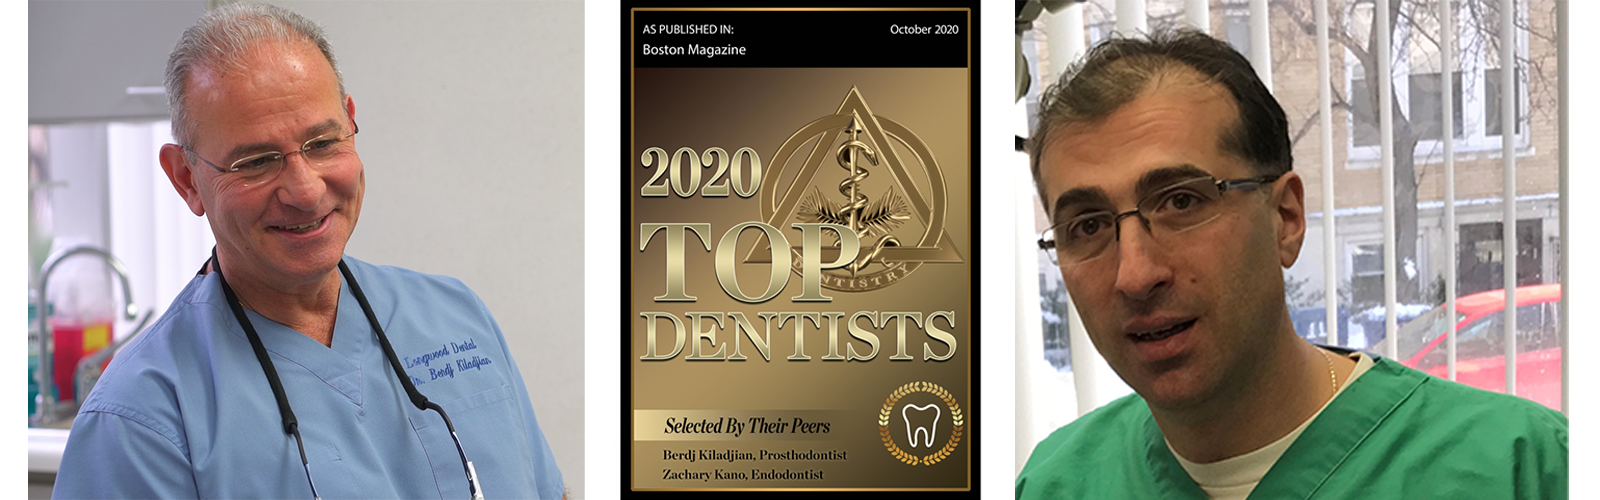 2020 Top Dentists | Boston Magazine